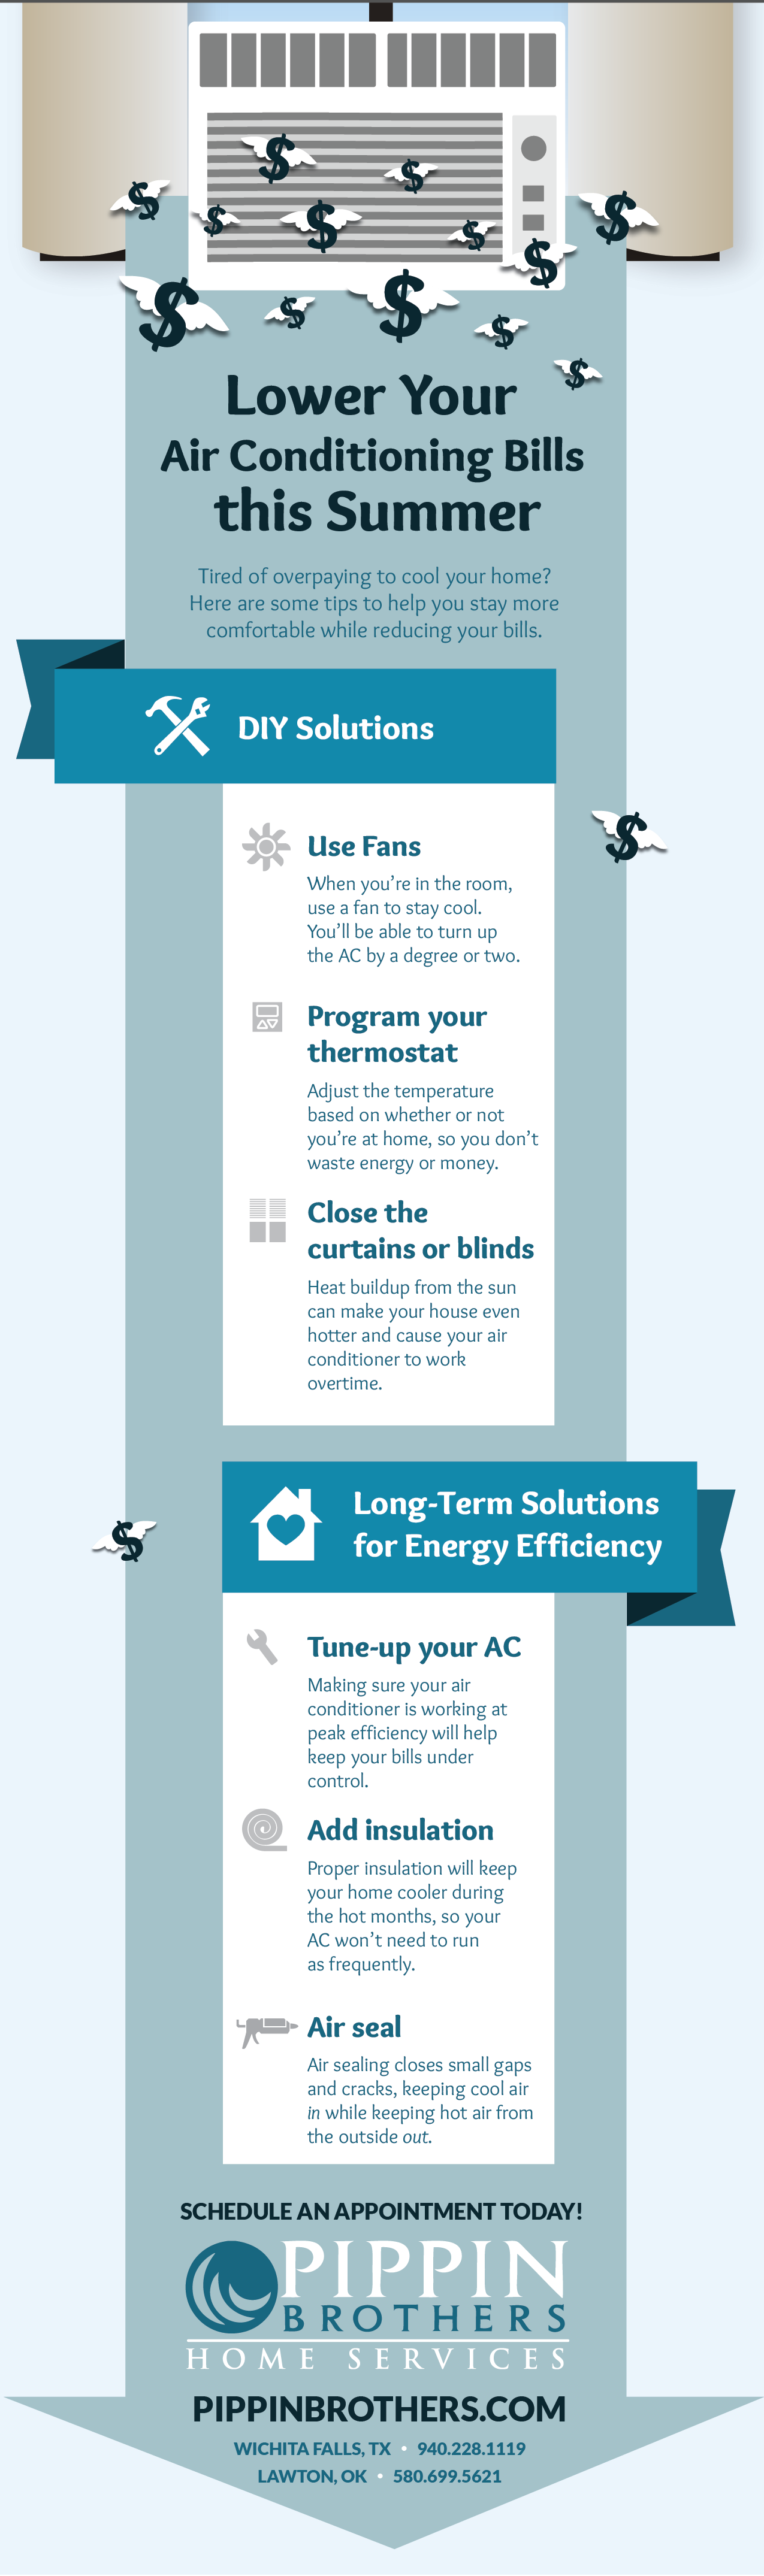 Ways to Lower Your Air Conditioning Bills this Summer Infographic